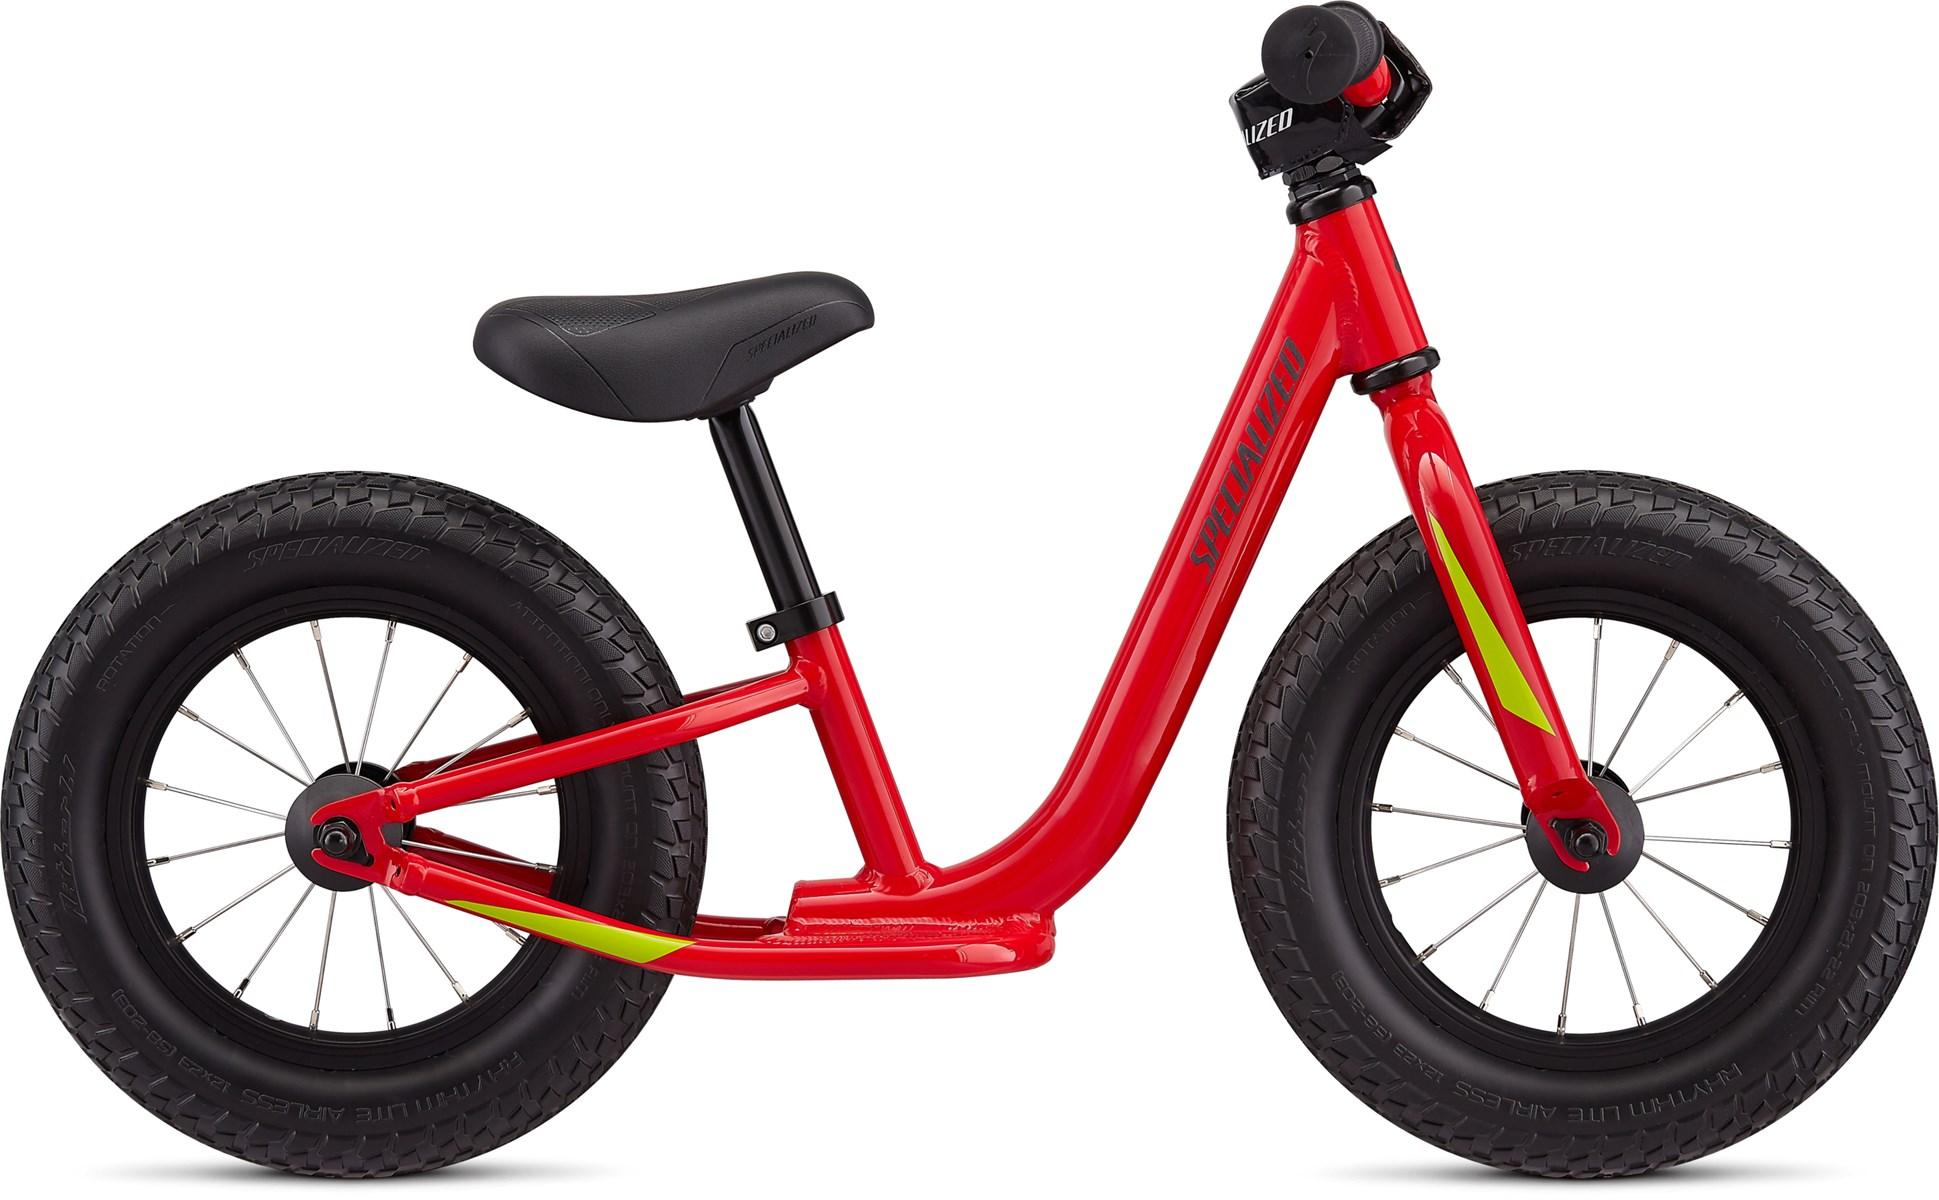 43412f9504f 2019 Specialized Hotwalk Childs balance bike in Red £128.00